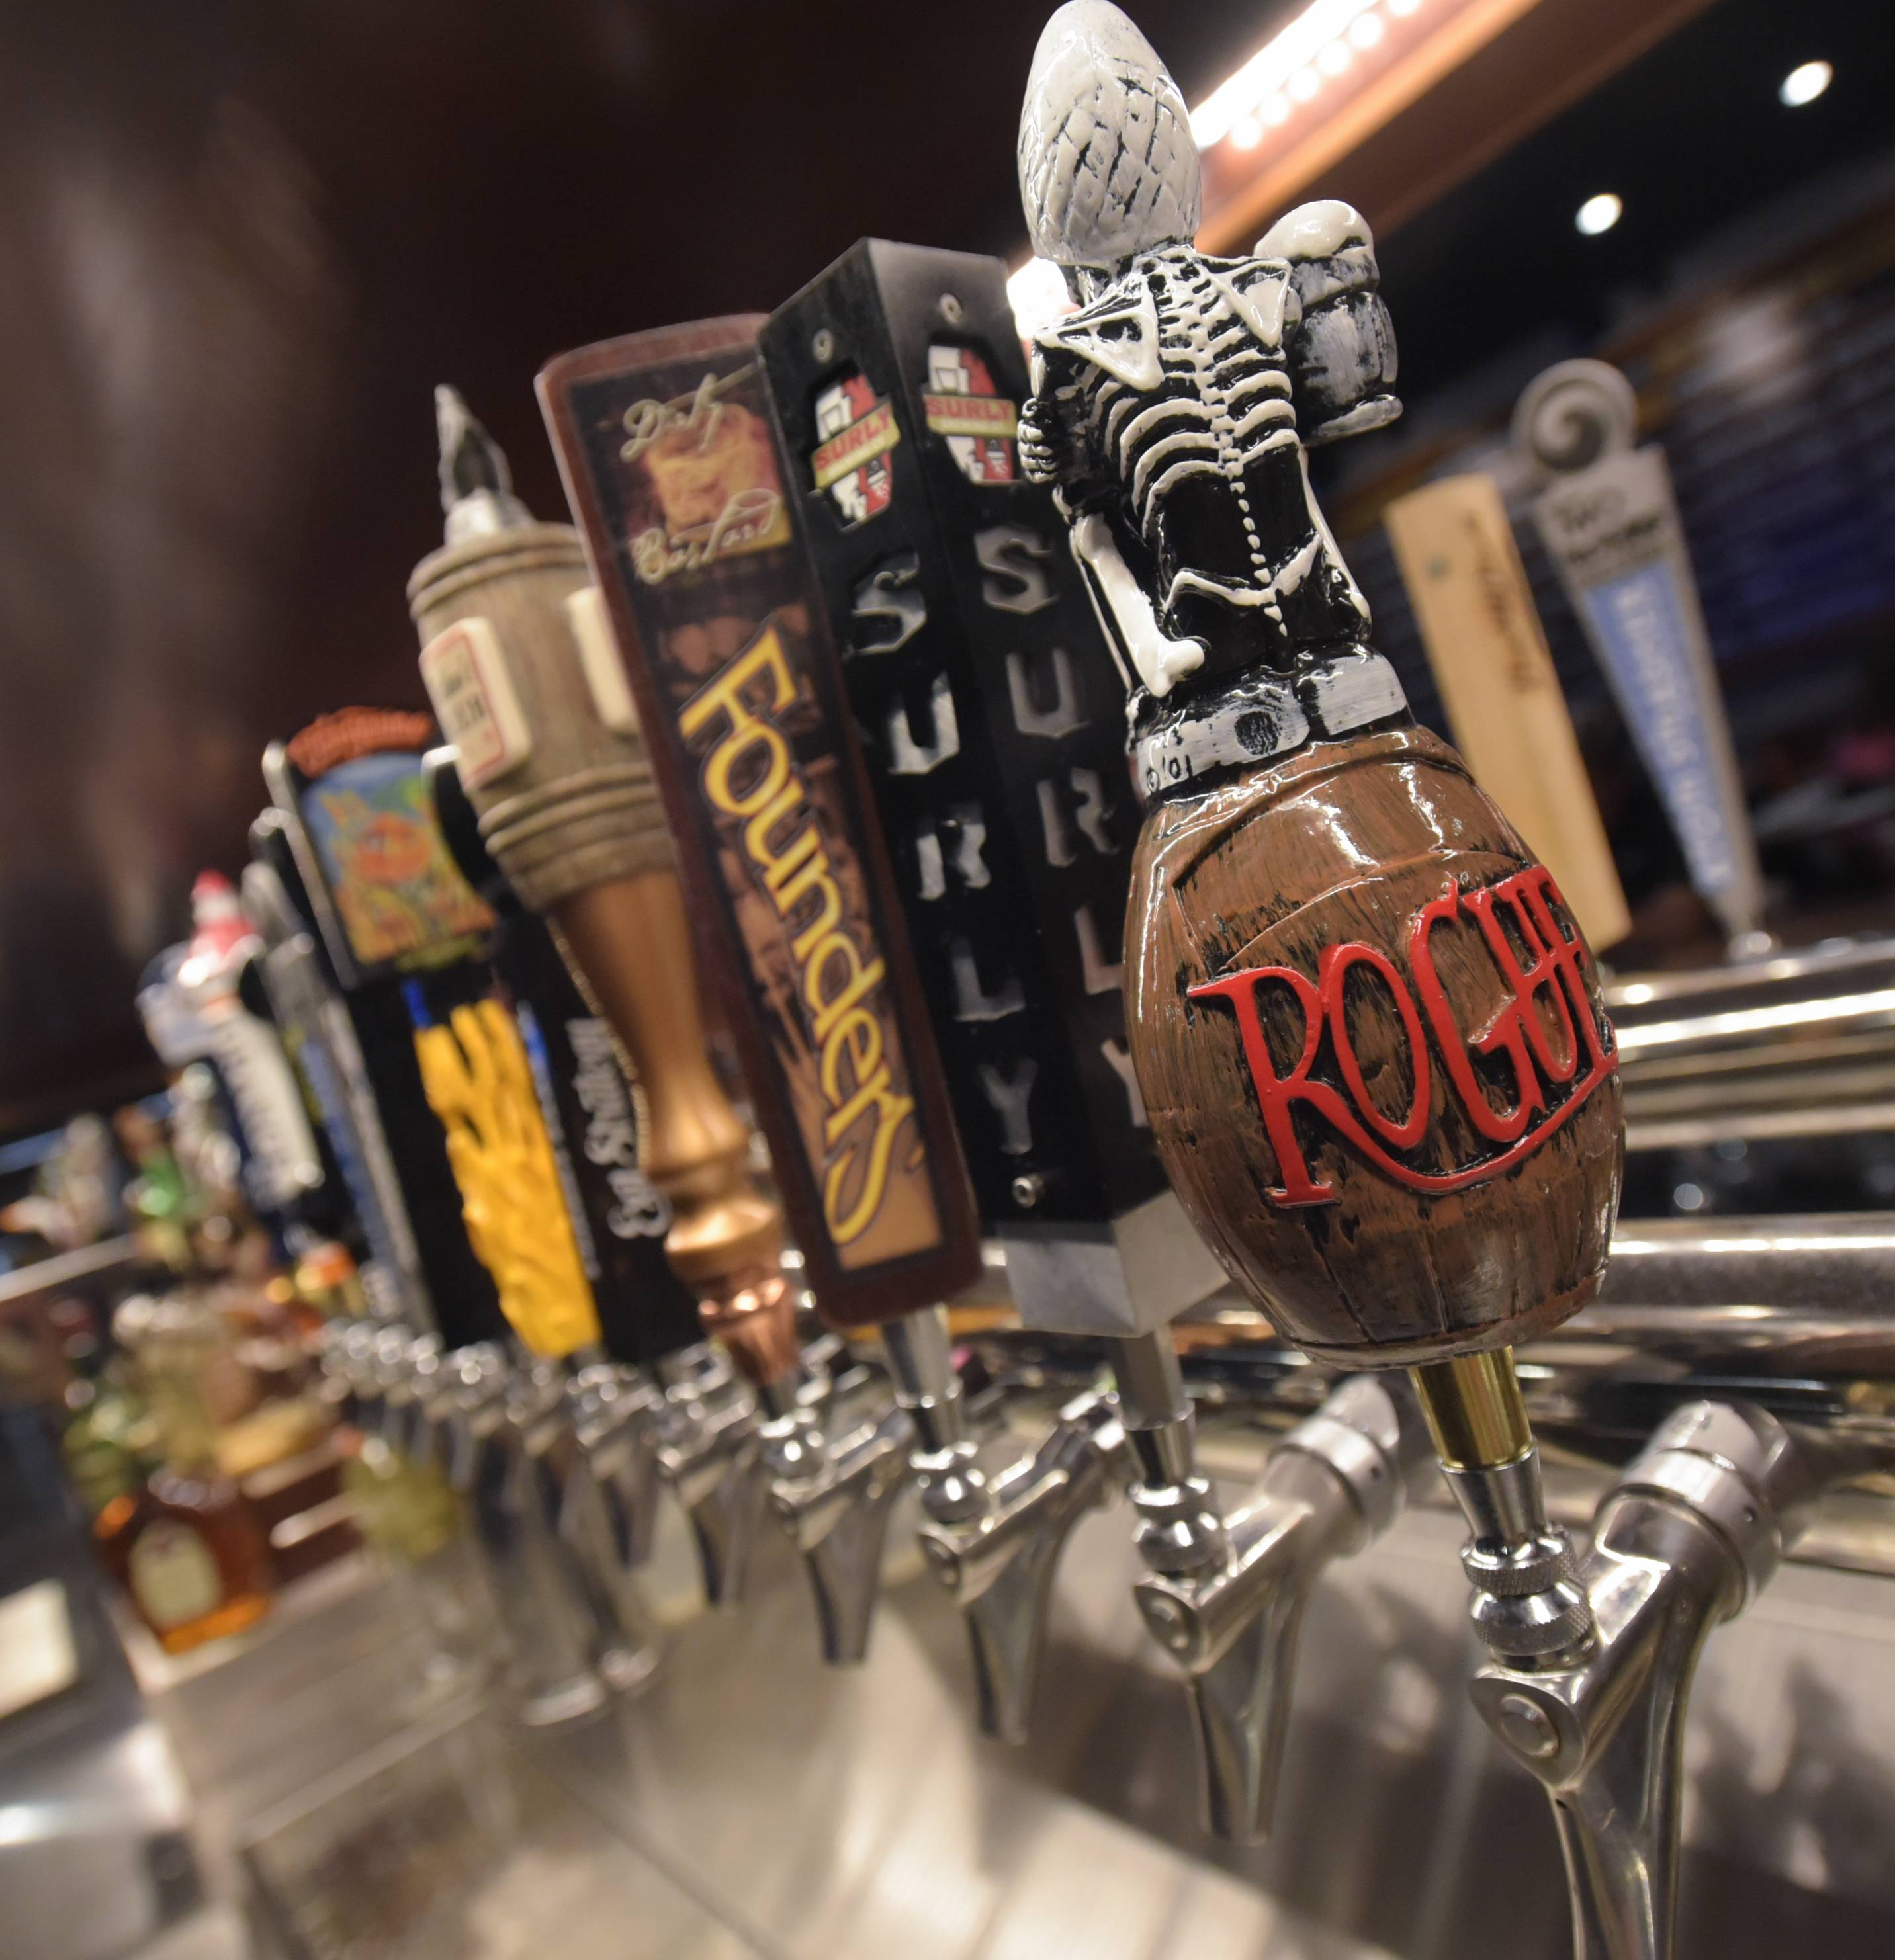 Naperville's Old Town Pour House will be celebrating Illinois Craft Beer Week May 18-25.